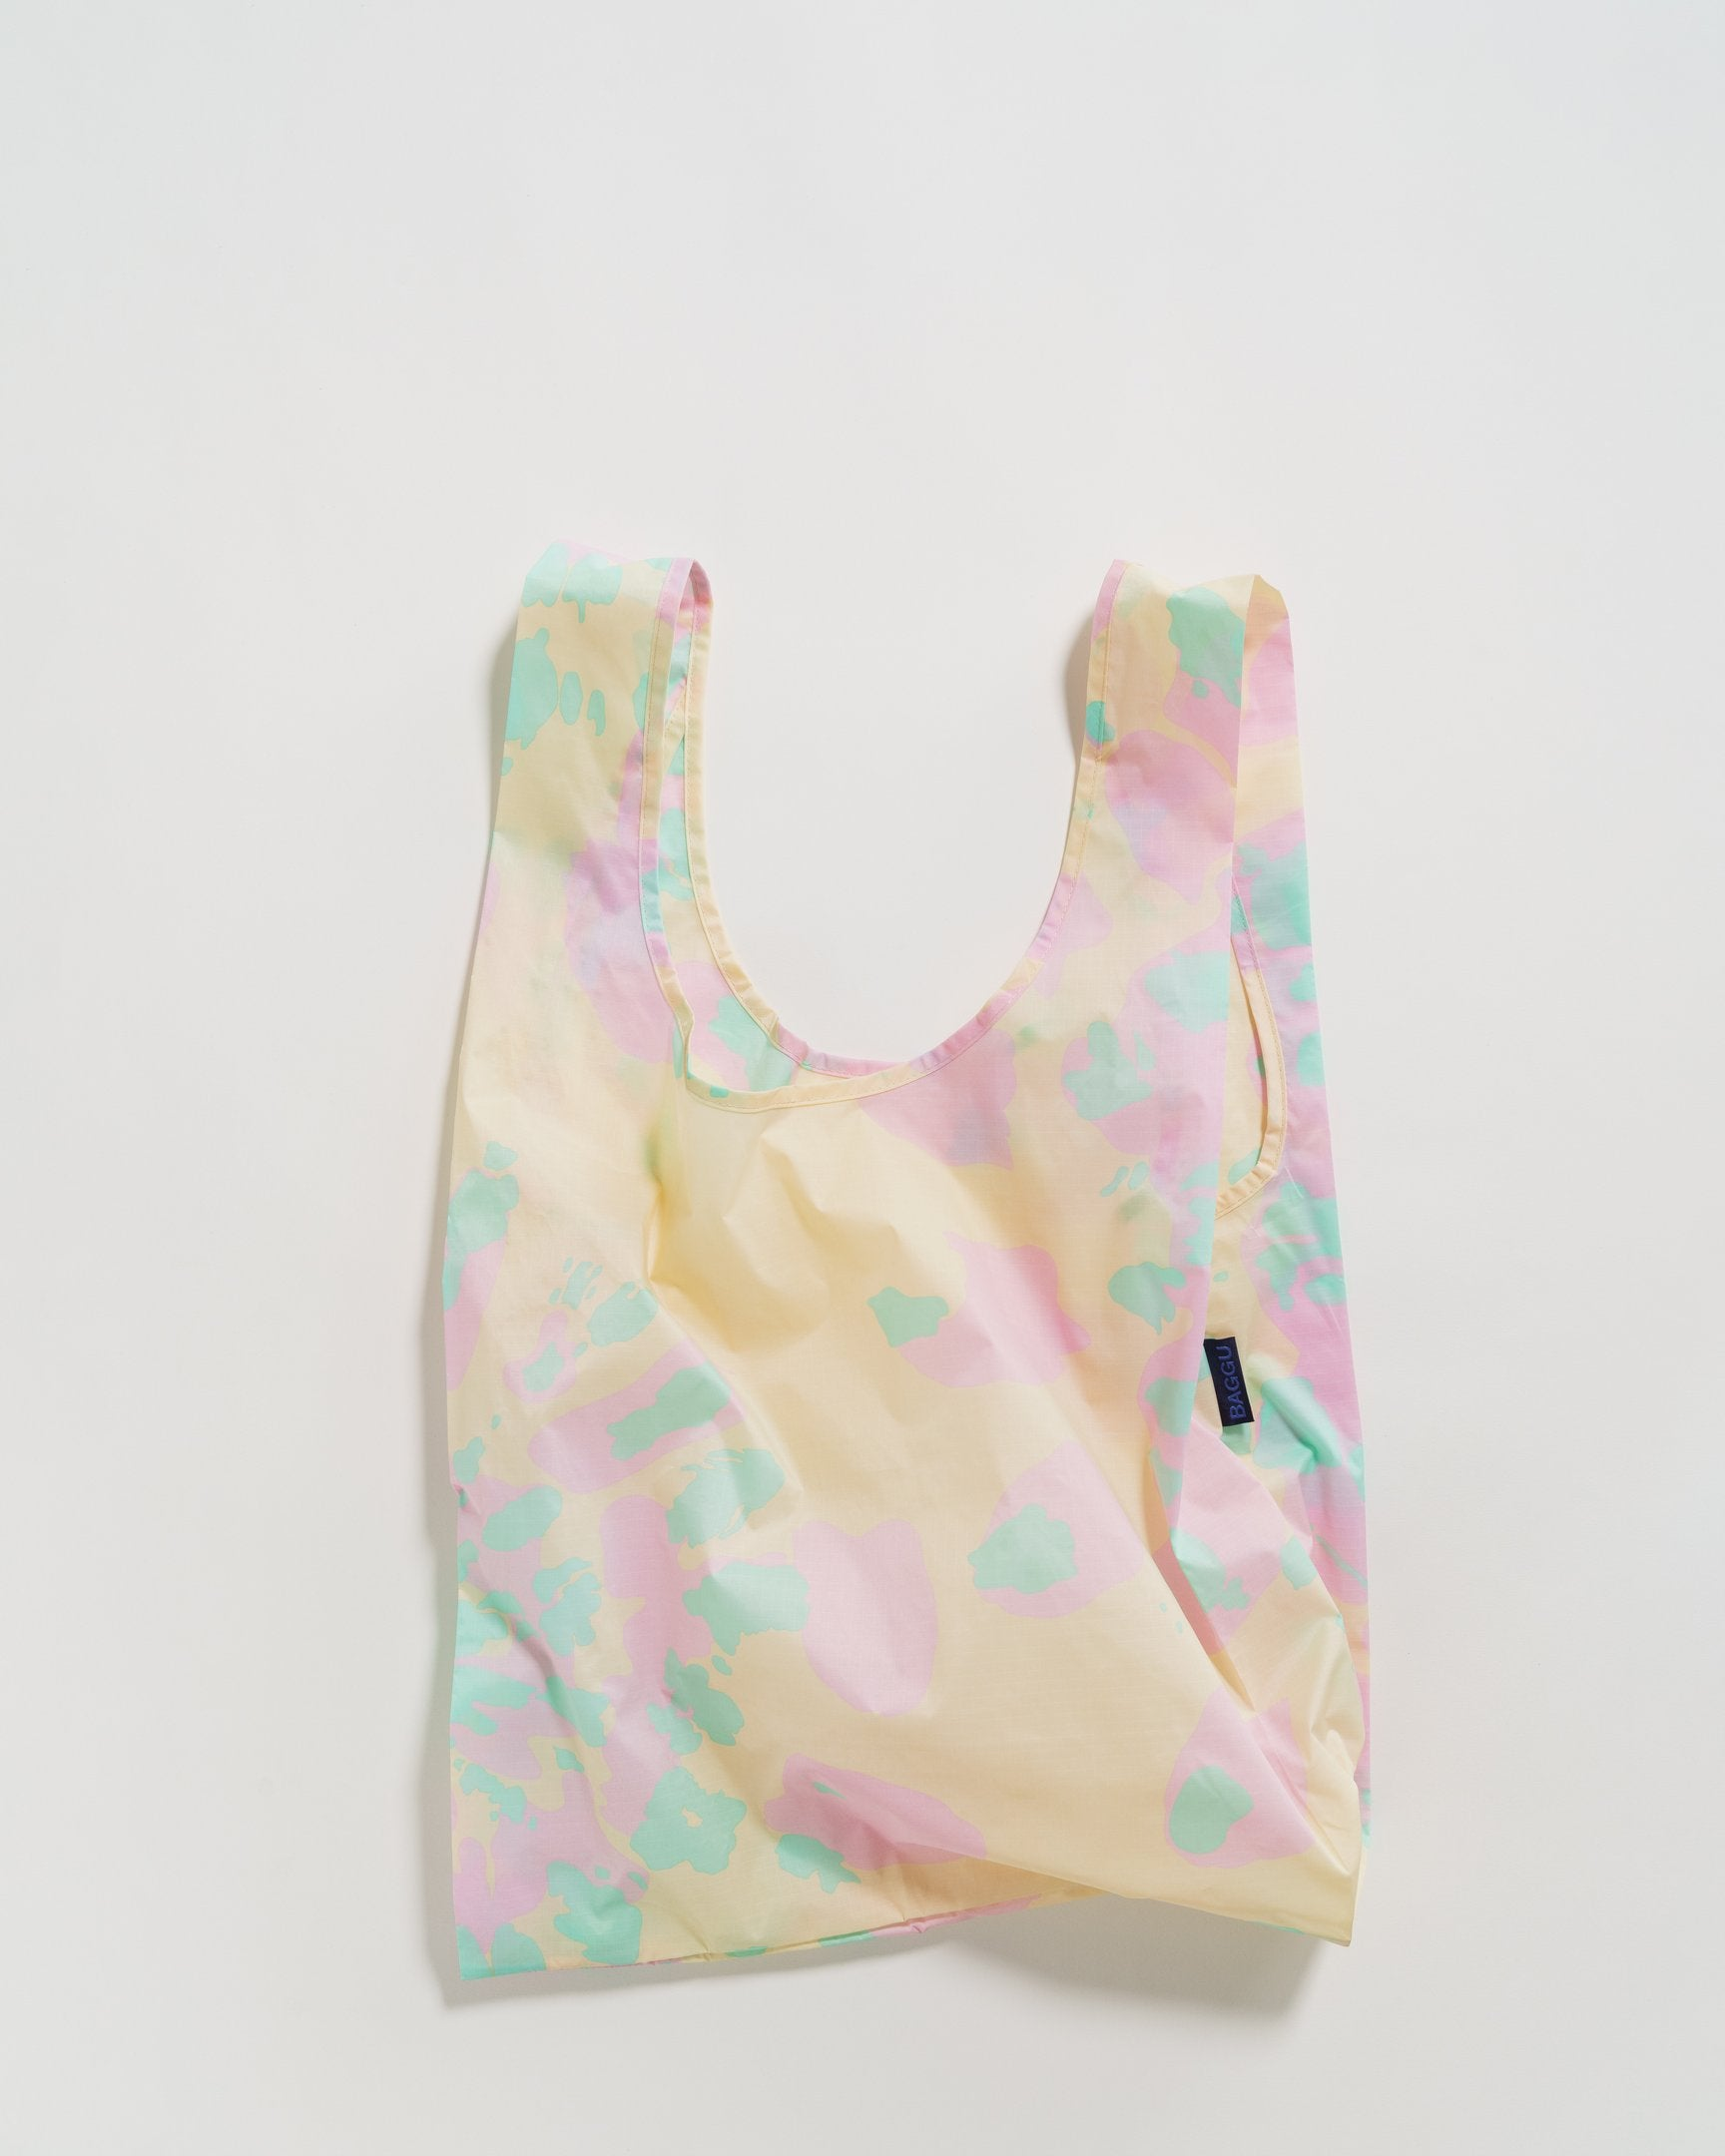 BAGGU | STANDARD REUSABLE SHOPPING BAG - EcoFreax | Think Bigger.